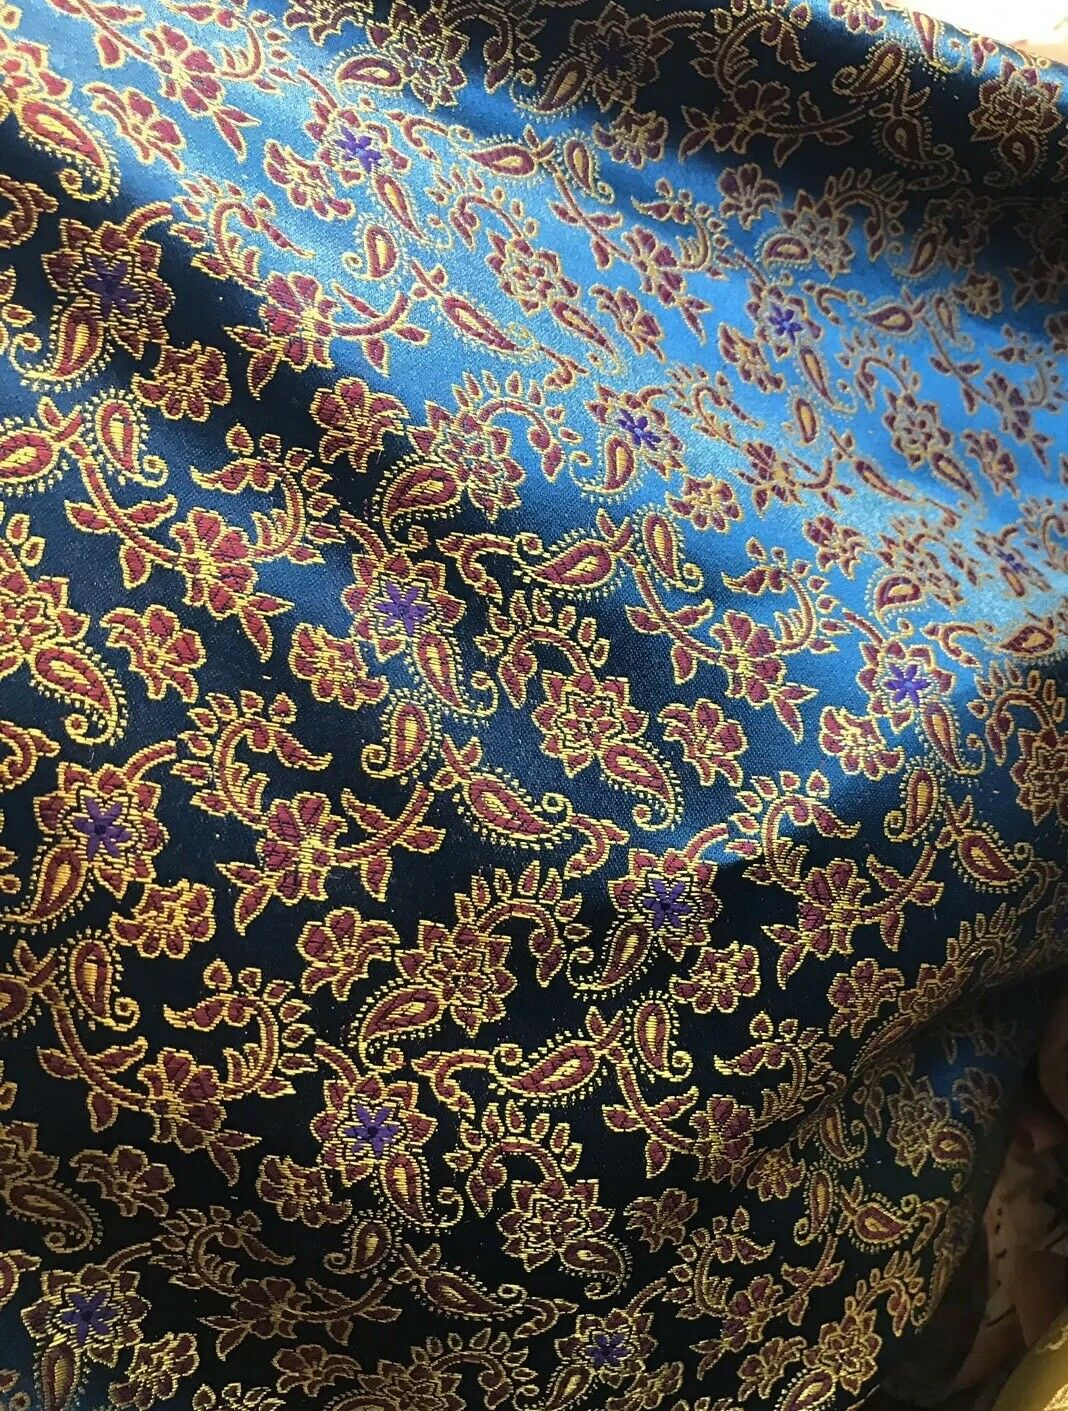 SALE! Countess Halle Designer 100% Silk Brocade Fabric- Midnight Blue Floral